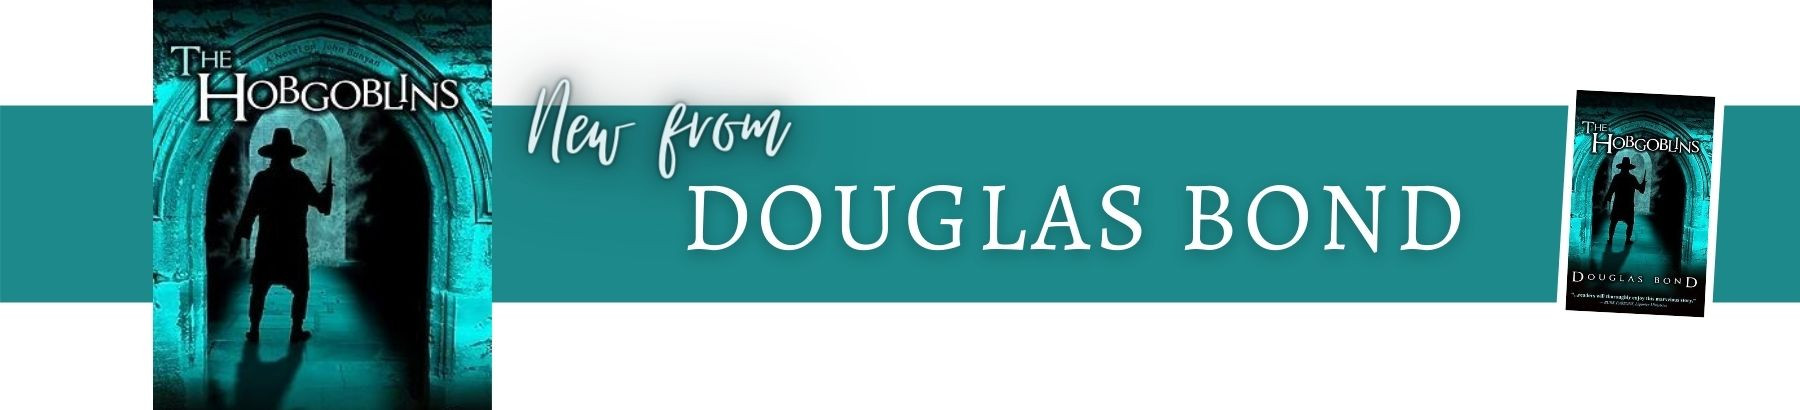 New book from Douglas Bond